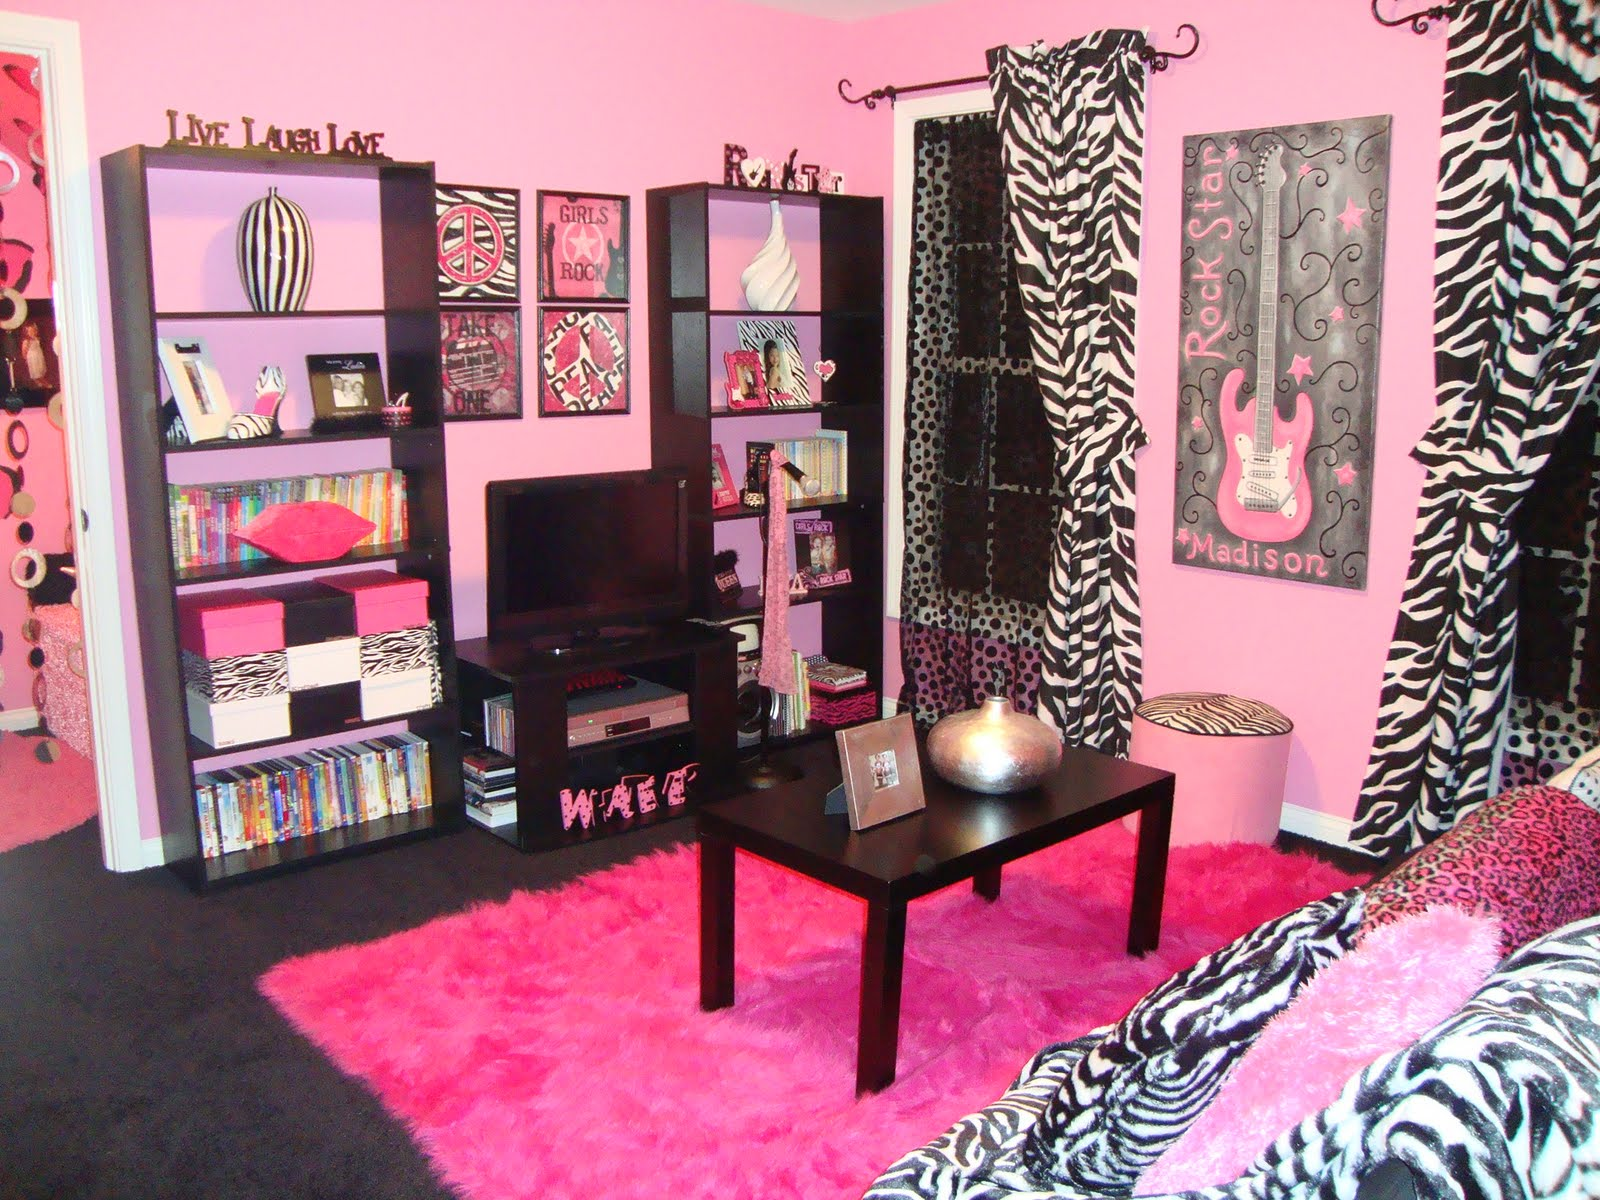 Fashionable teen hangout lounge design dazzle for Room decor zebra print